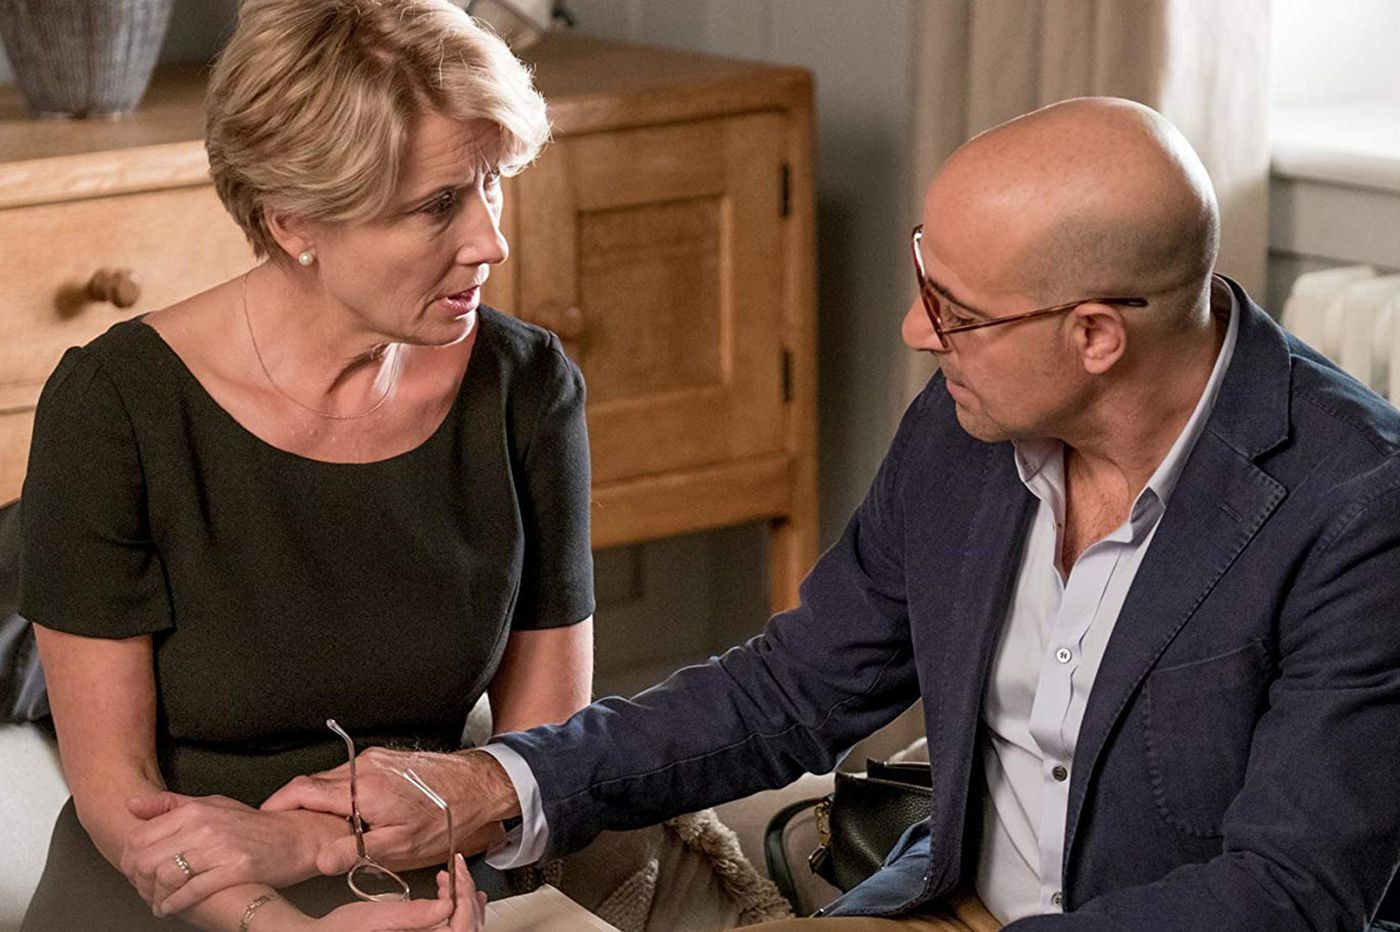 Emma Thompson's acting makes 'The Children Act' worth seeing